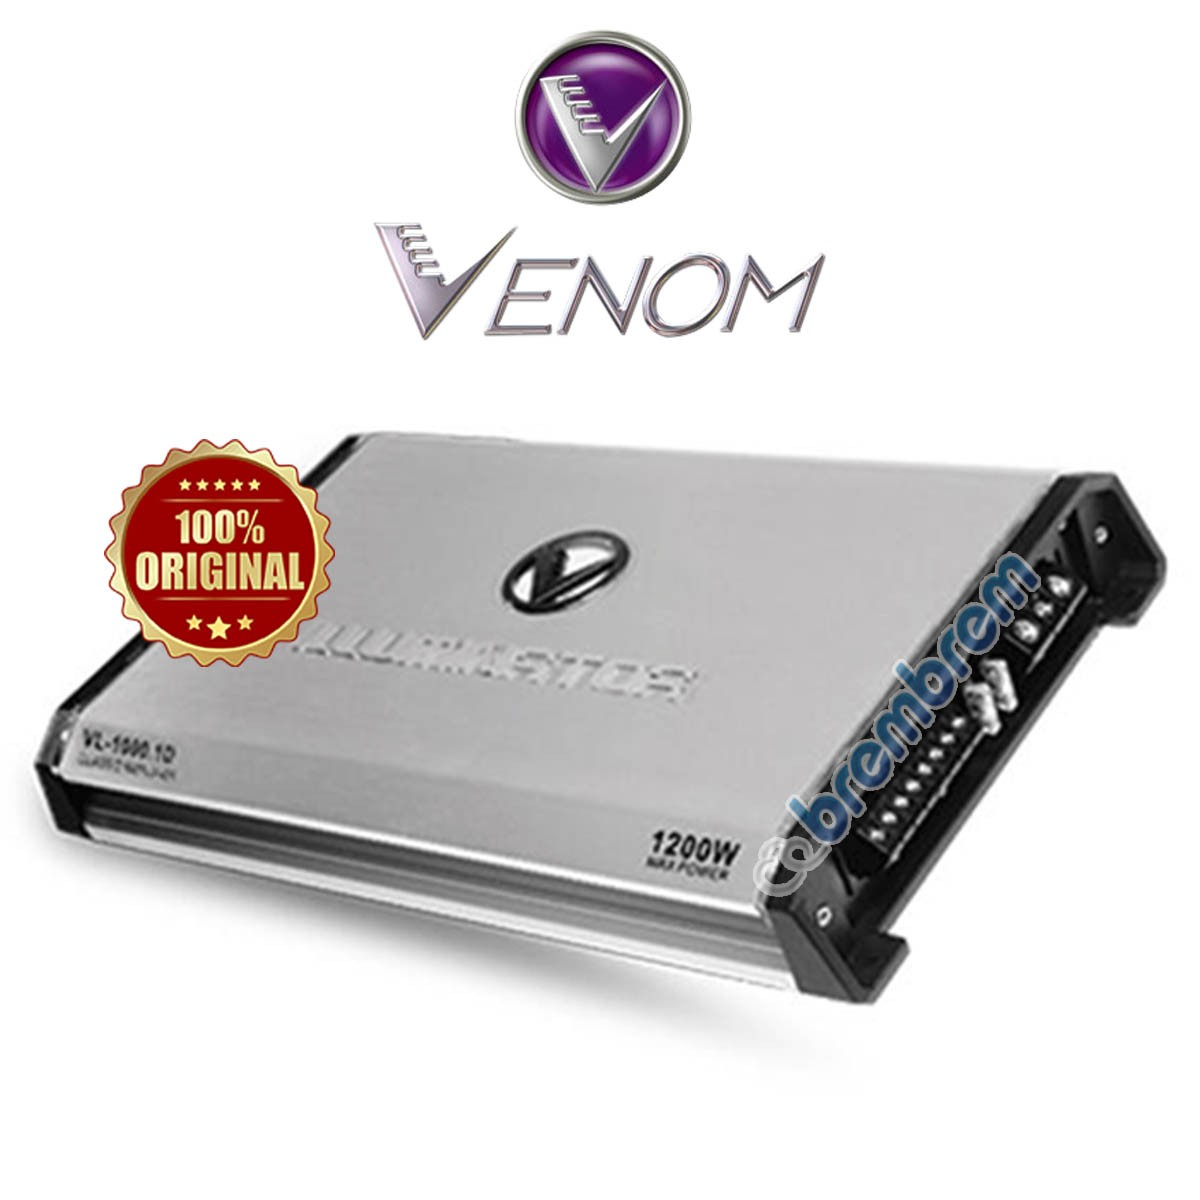 VENOM ILLUMINATOR SERIES VL1000.1D - POWER MONOBLOCK